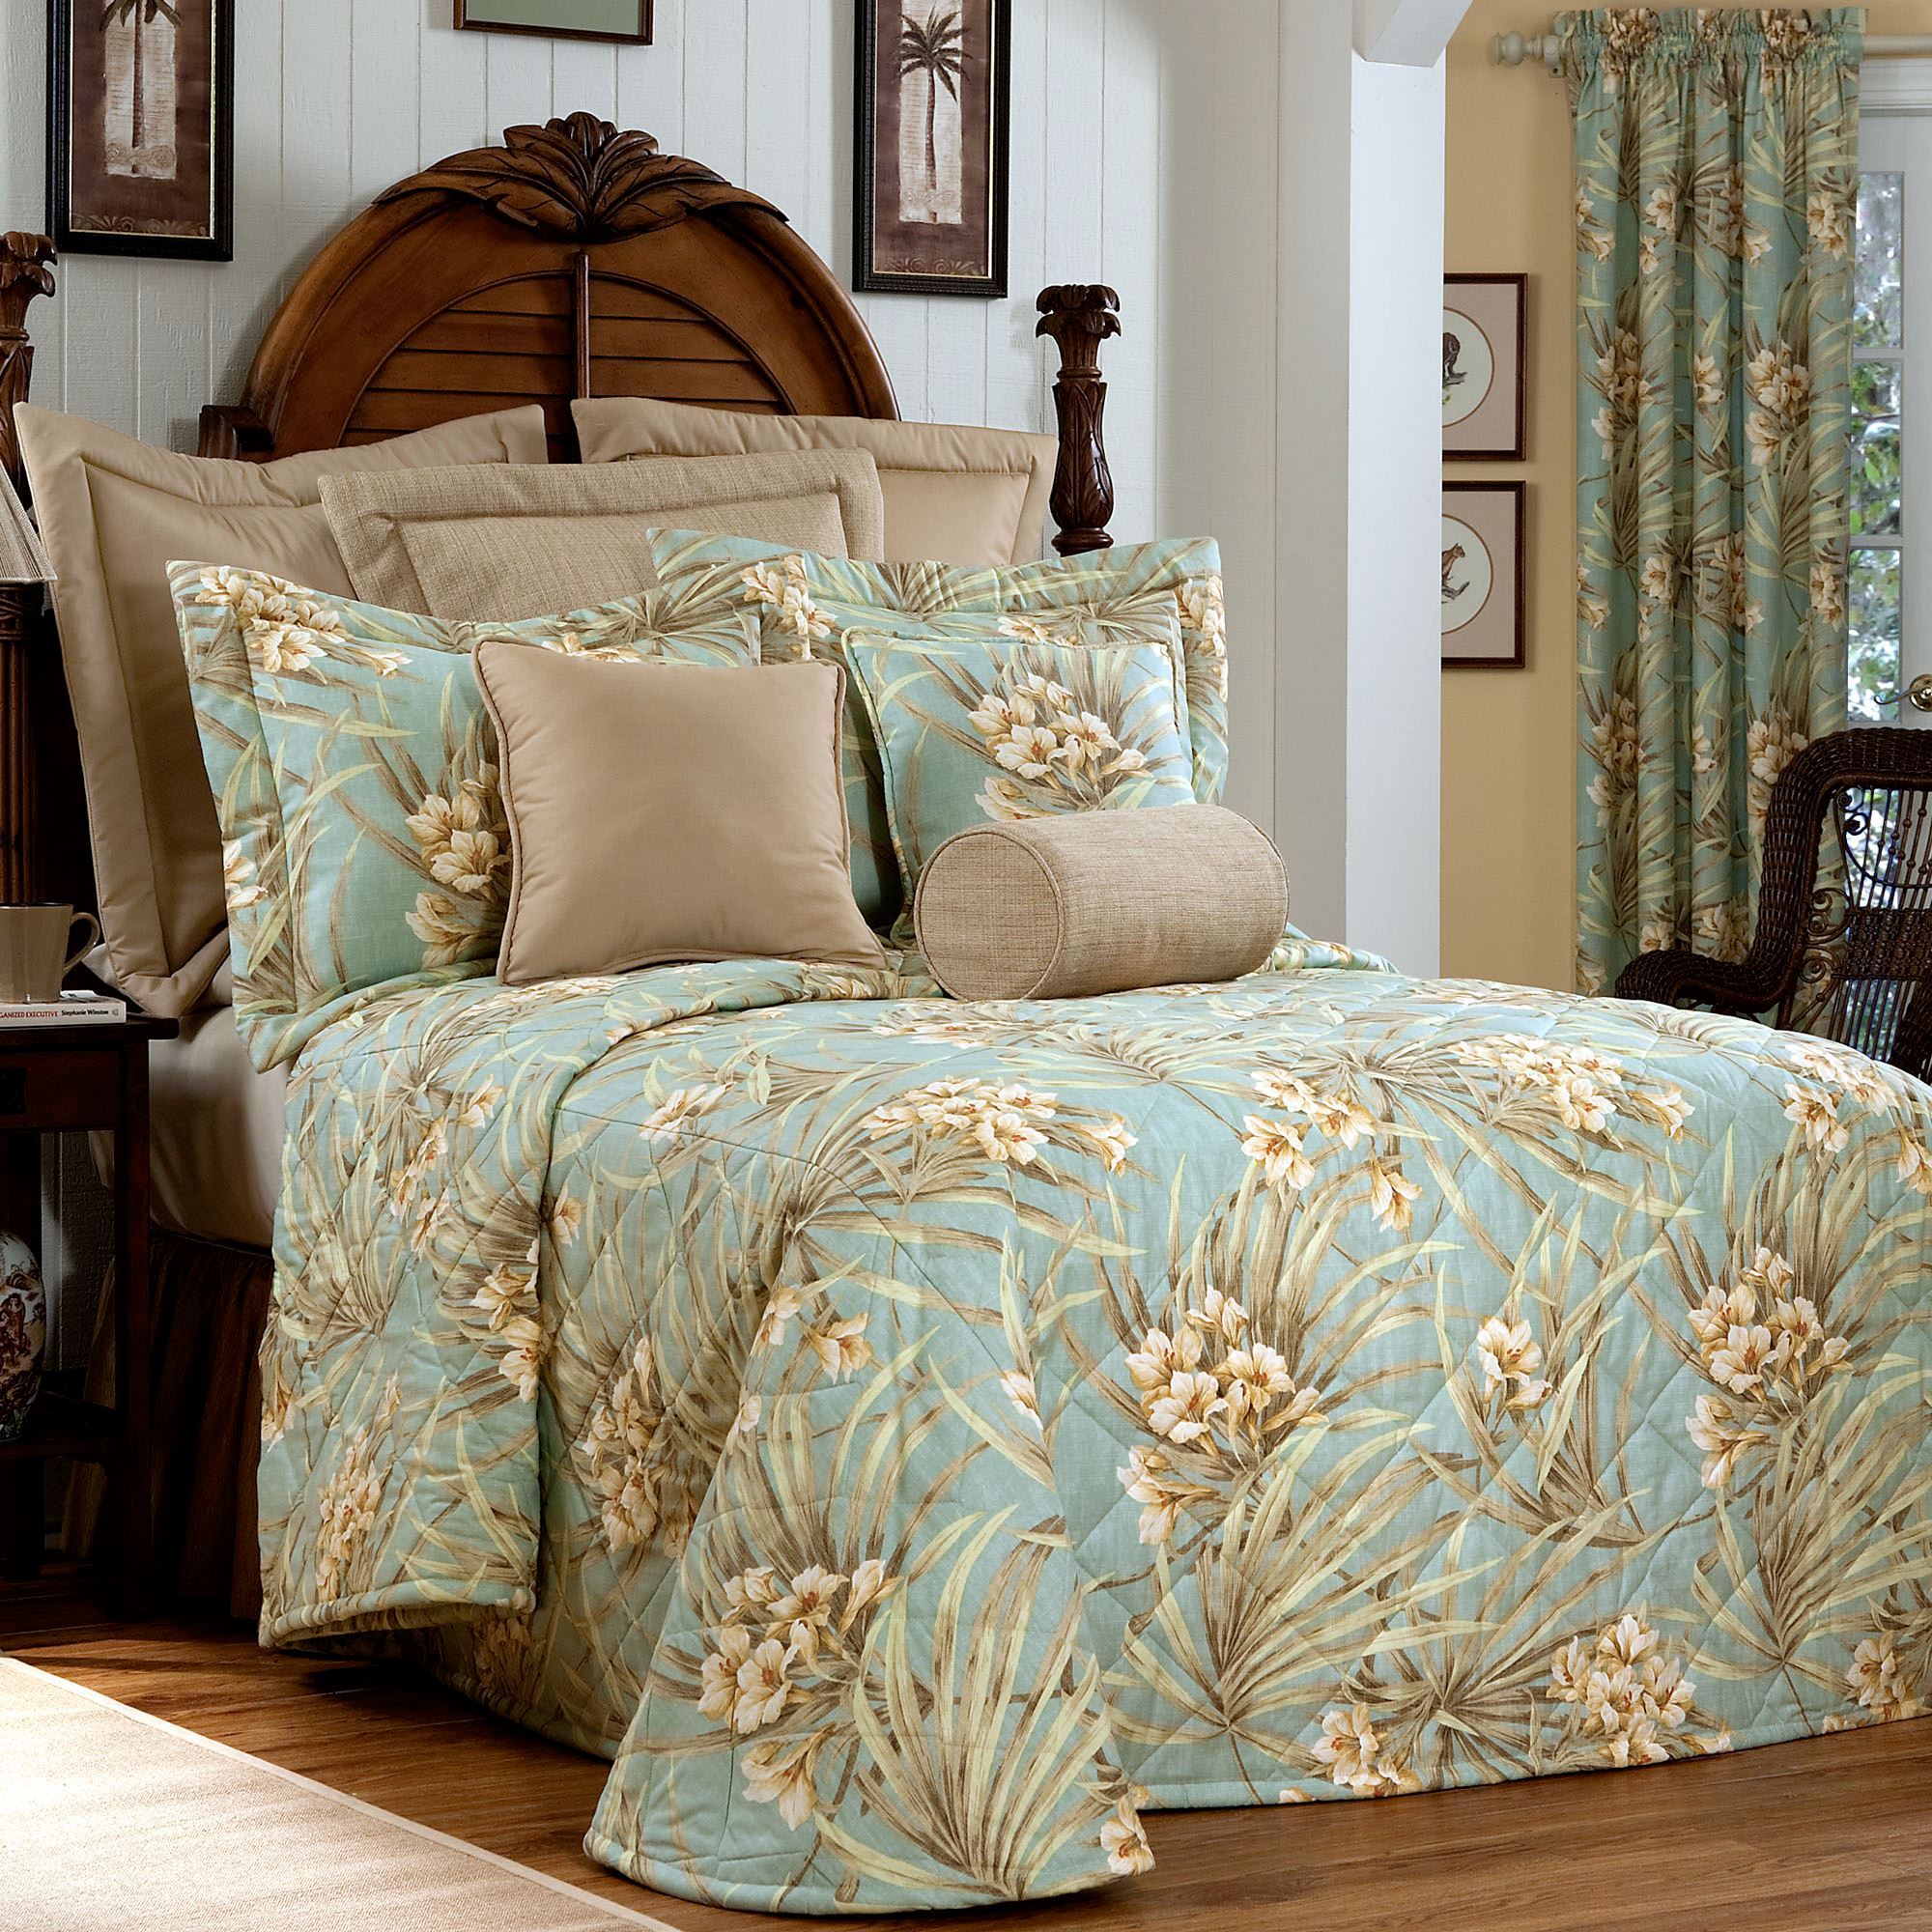 Martinique Tropical Bedspread Turquoise Click To Expand